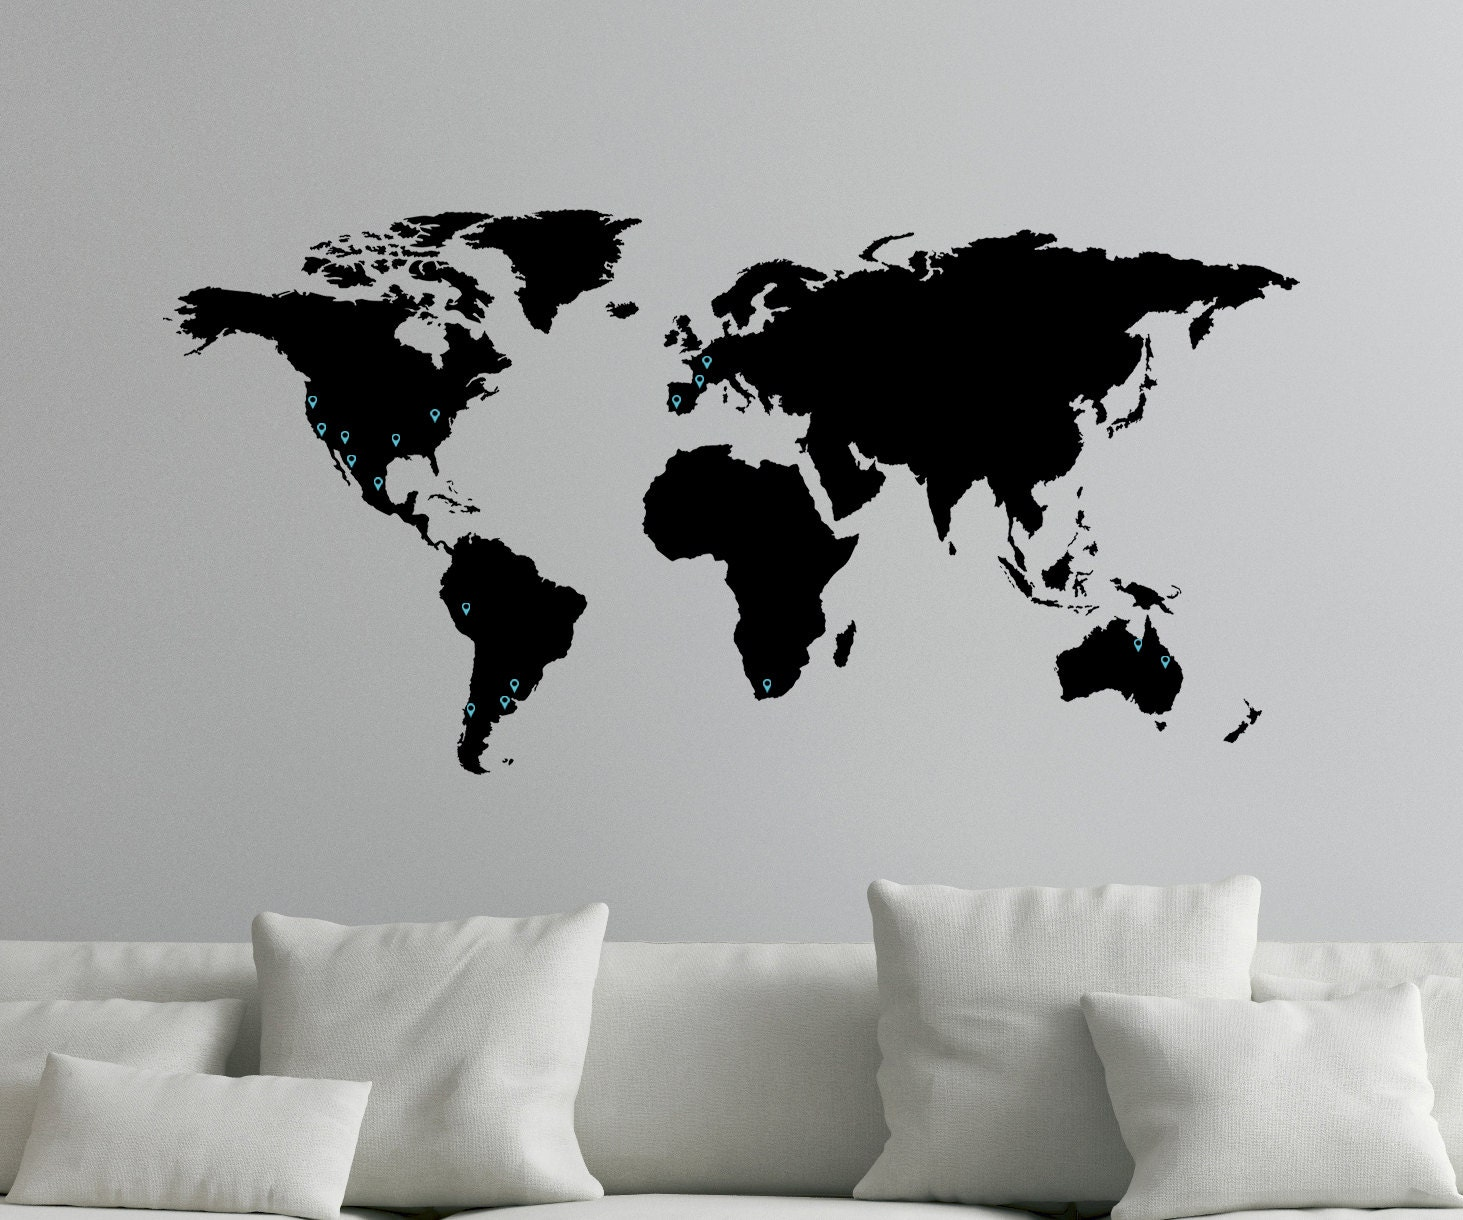 Large world map decal for wall with location markers 0050 description large world map gumiabroncs Choice Image